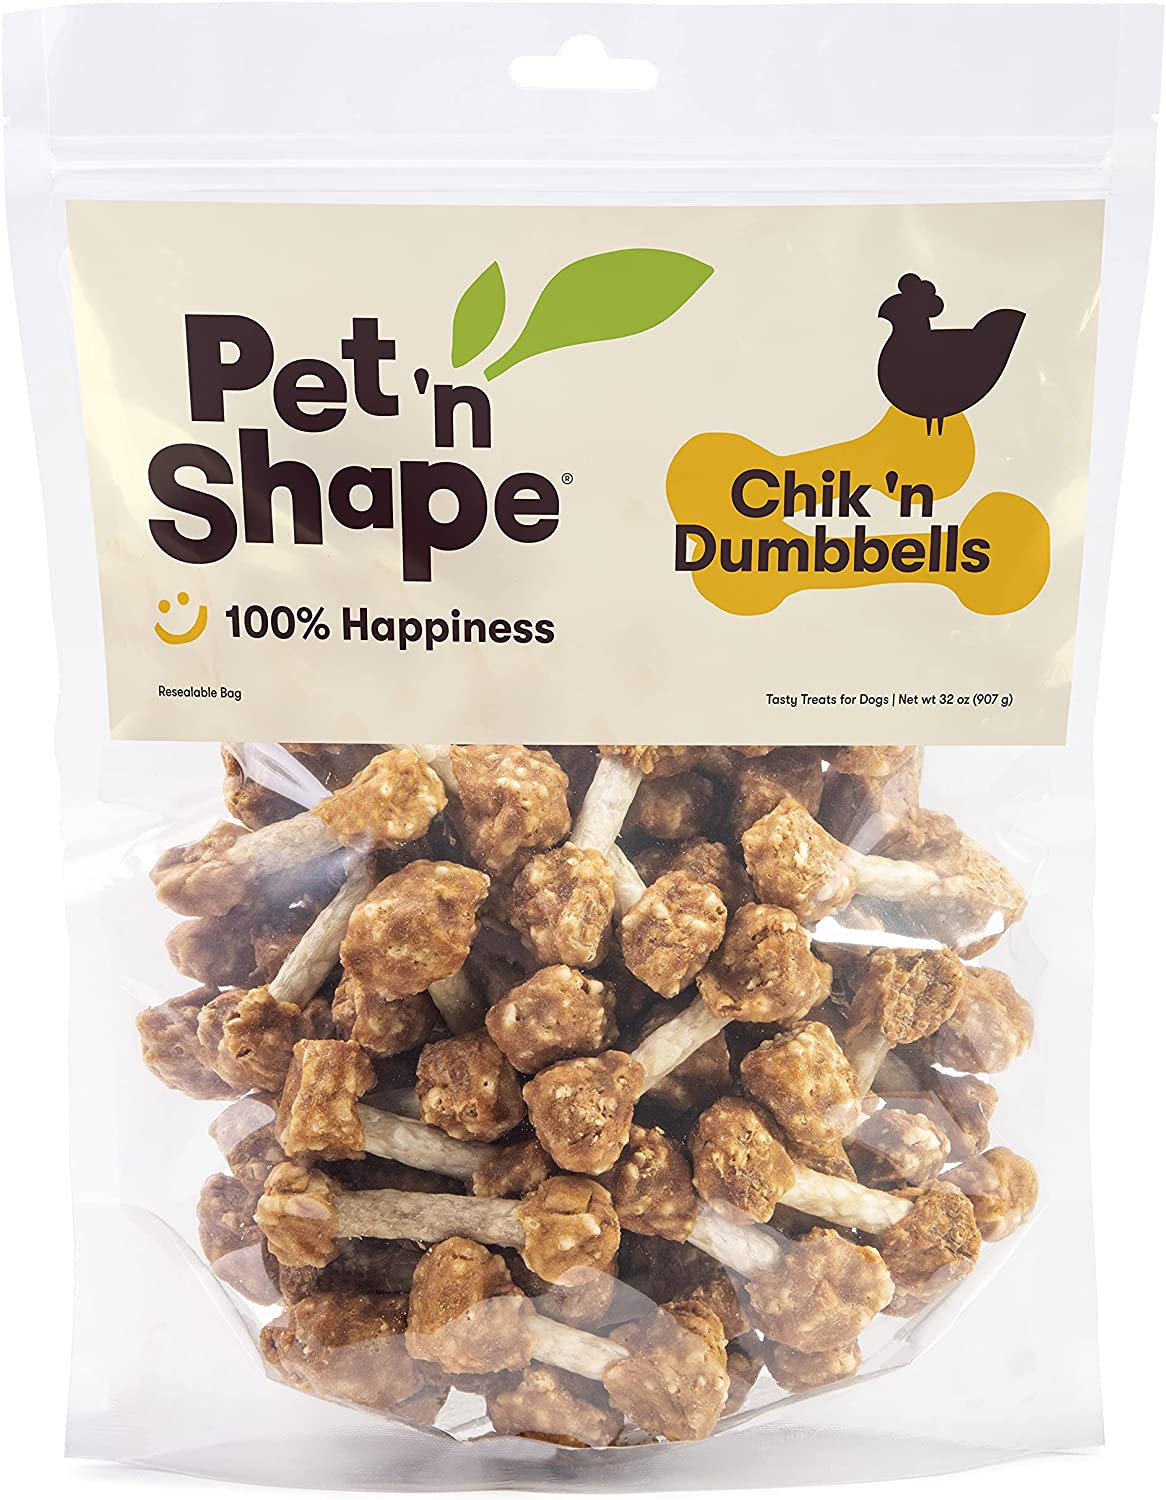 Pet 'N Shape Rice Treats Jacksonville Mall Dumbbells Dog Special Campaign Natural